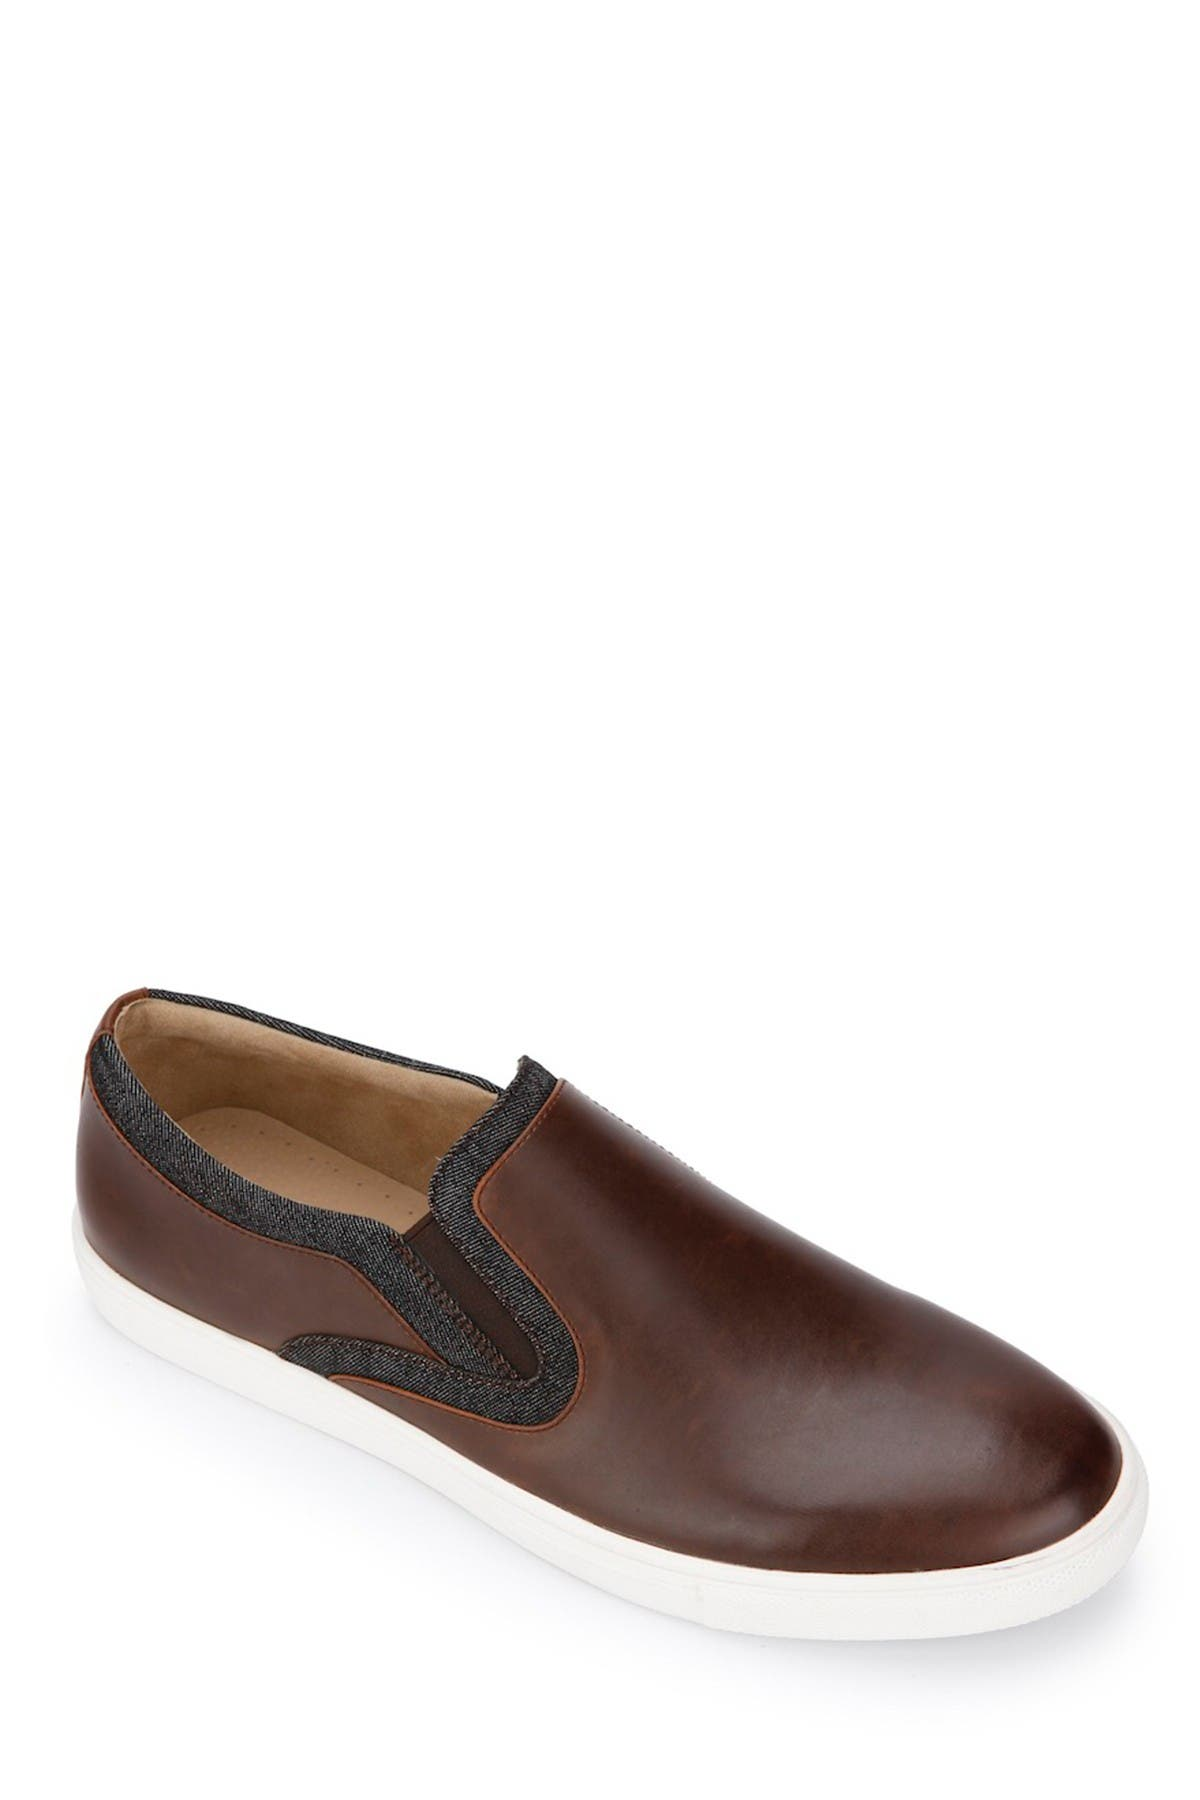 Image of Kenneth Cole Reaction Stand Slip-On Sneaker